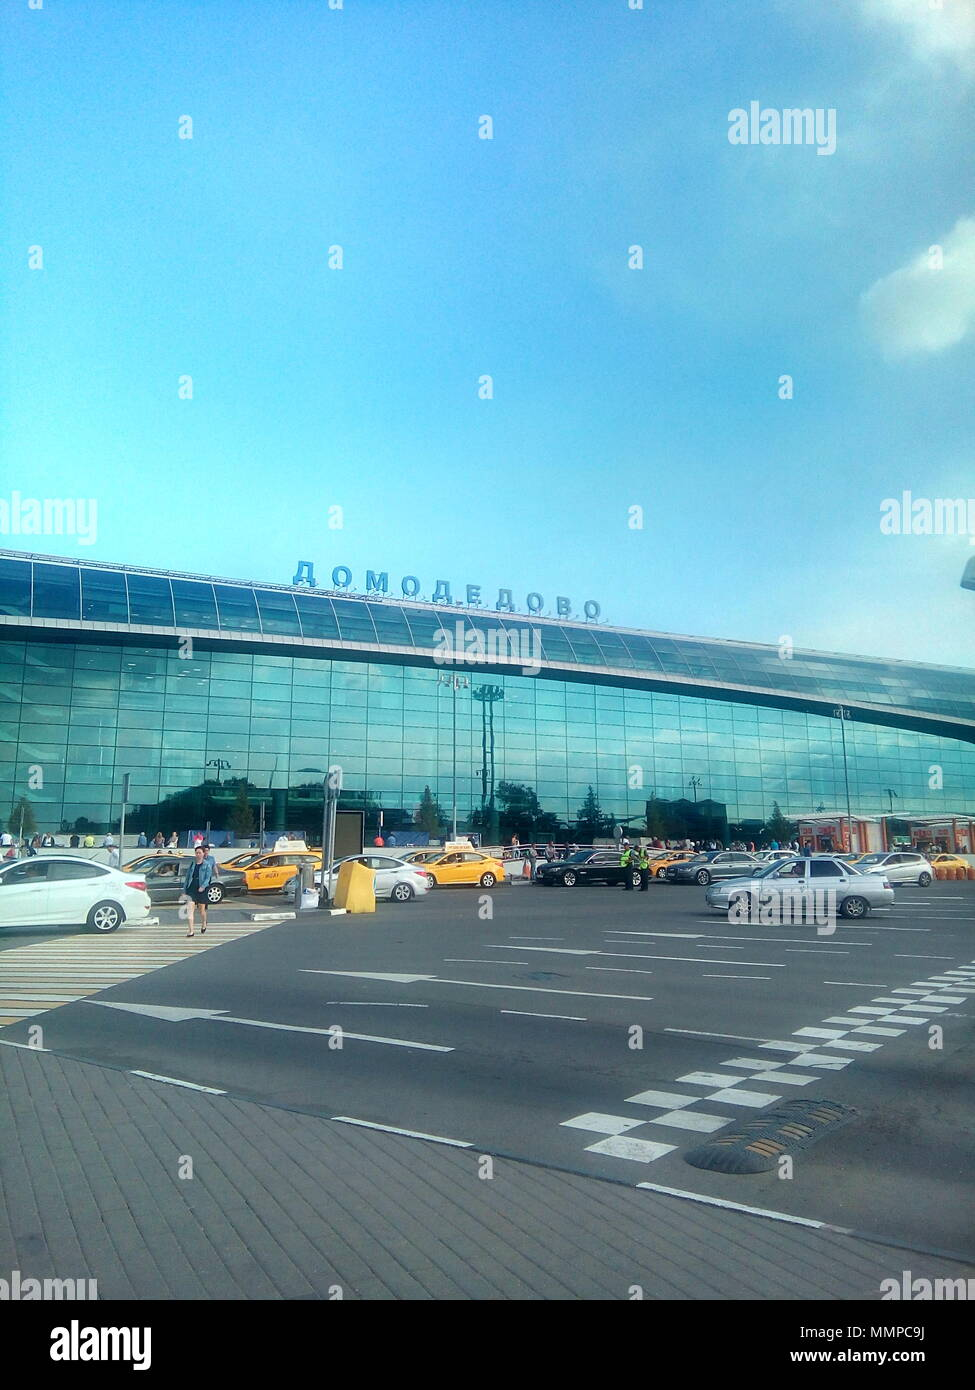 The terminal building of Domodedevo Airport in Moscow, Russia - Stock Image